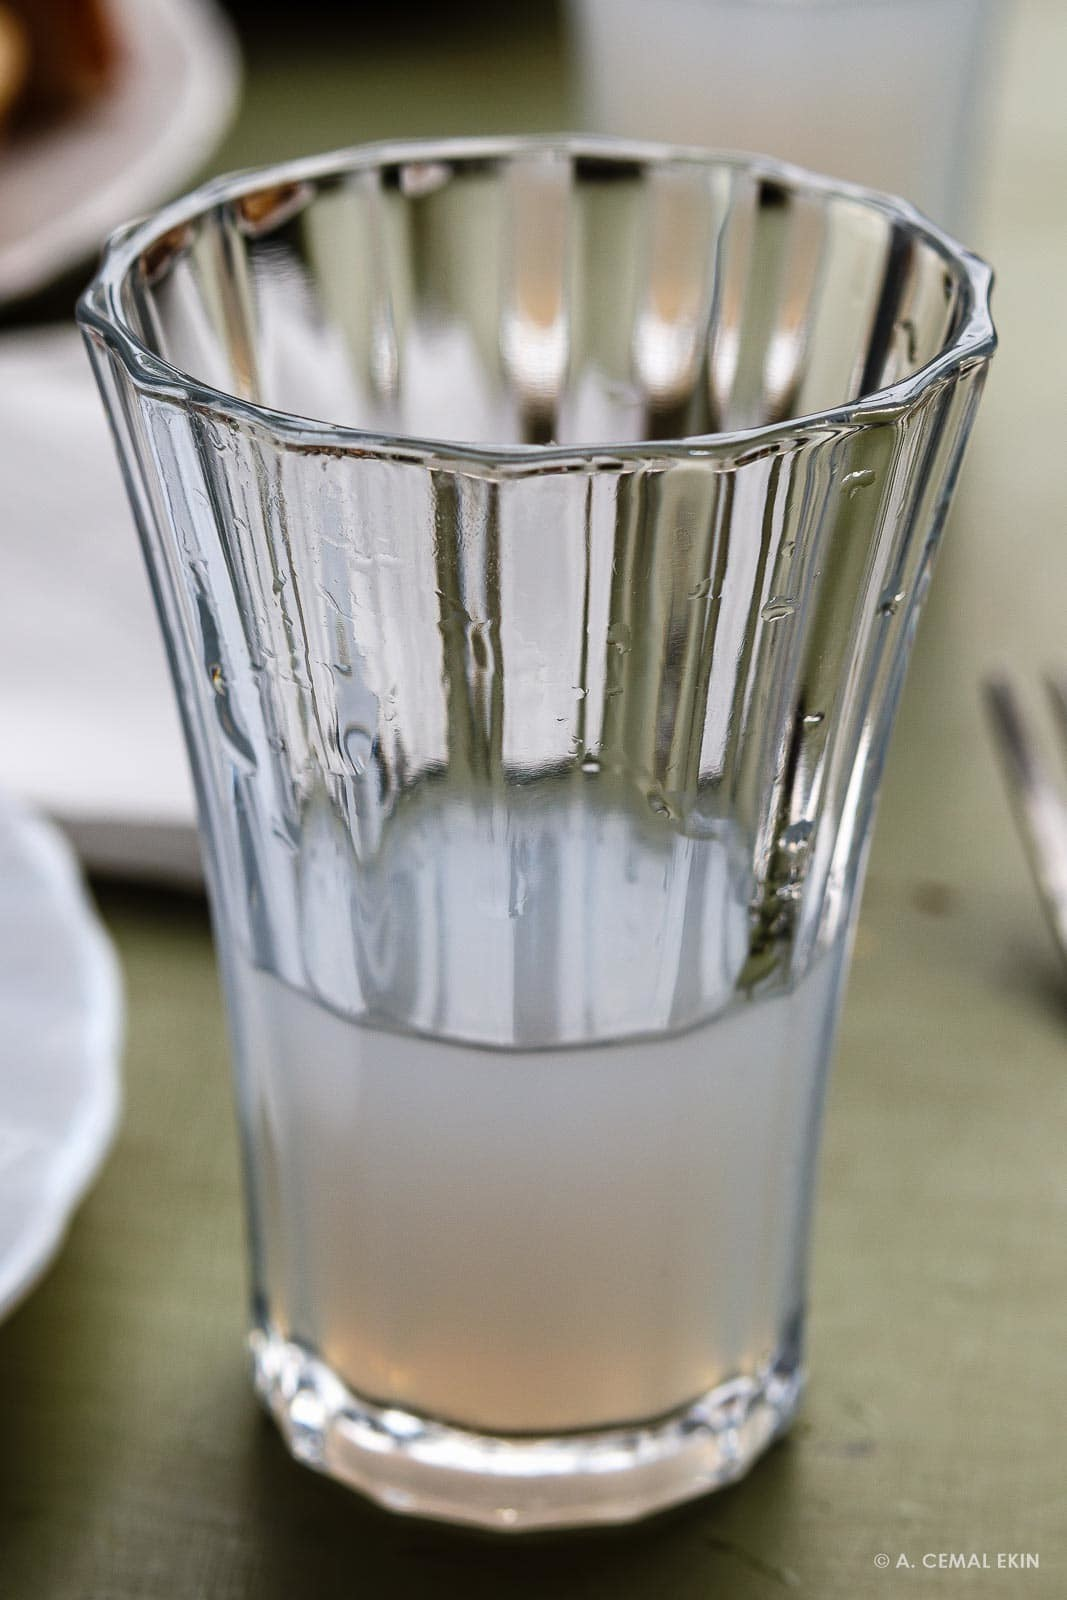 Excellent homemade raki